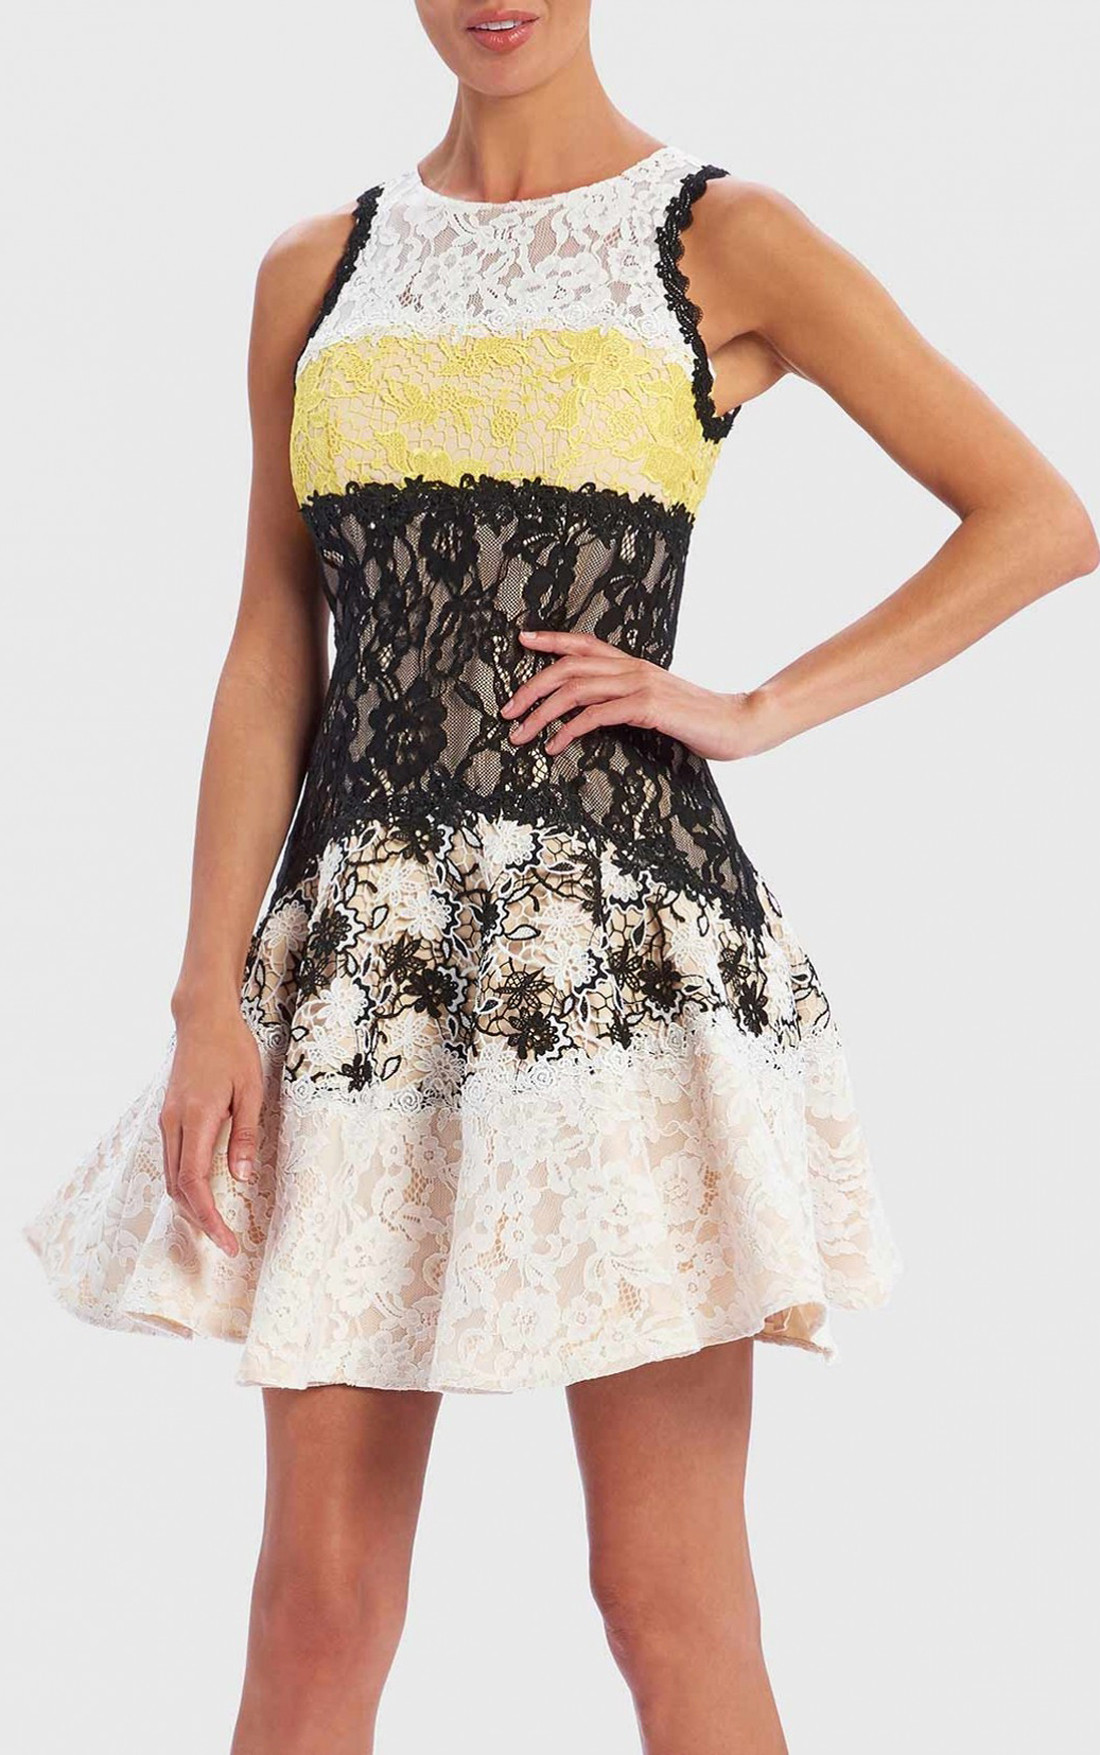 6fb3affb1d2d Forever Unique - Milan Black, Yellow And White Contrast Lace Skater Dress  (AF0107) ...